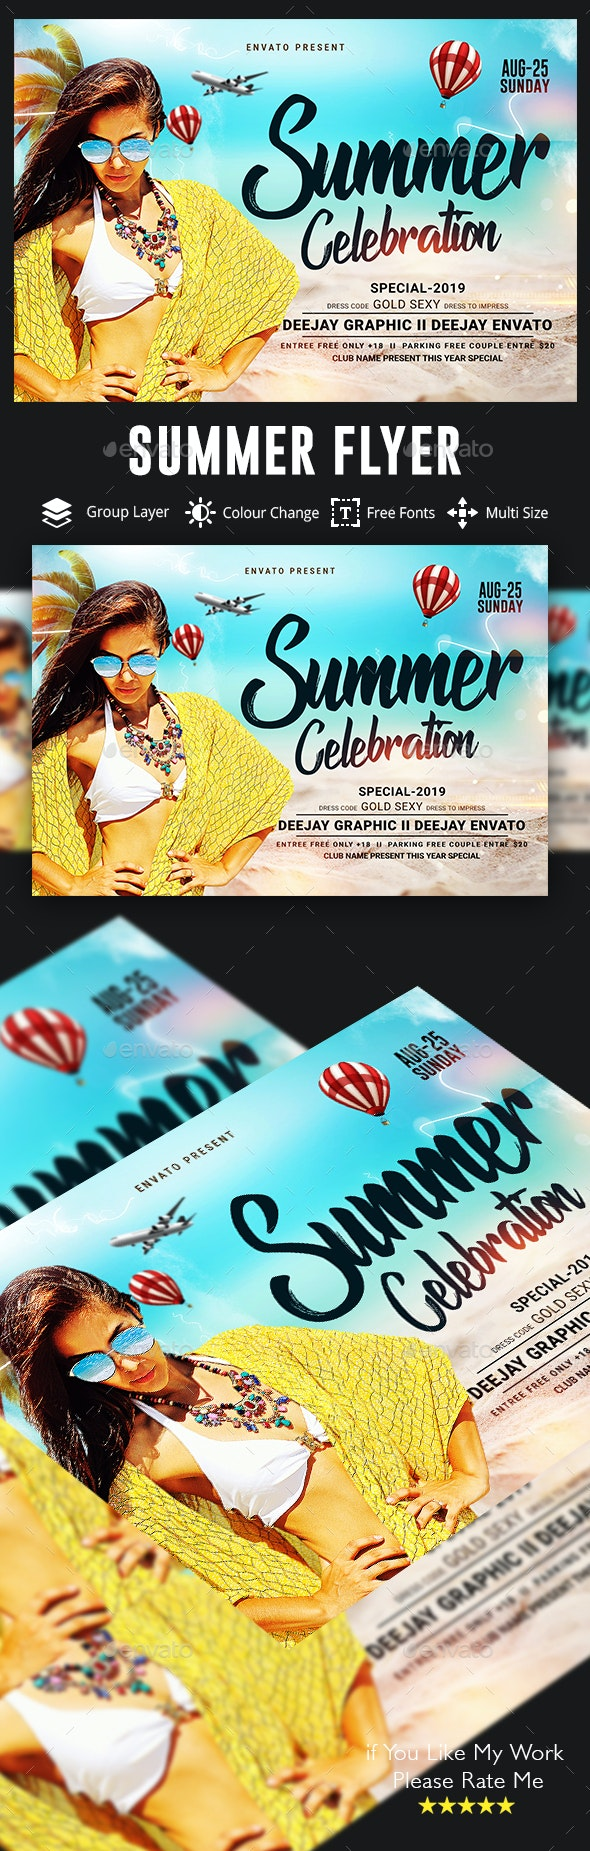 Summer Beach Celebration Party Flyer Template - Clubs & Parties Events